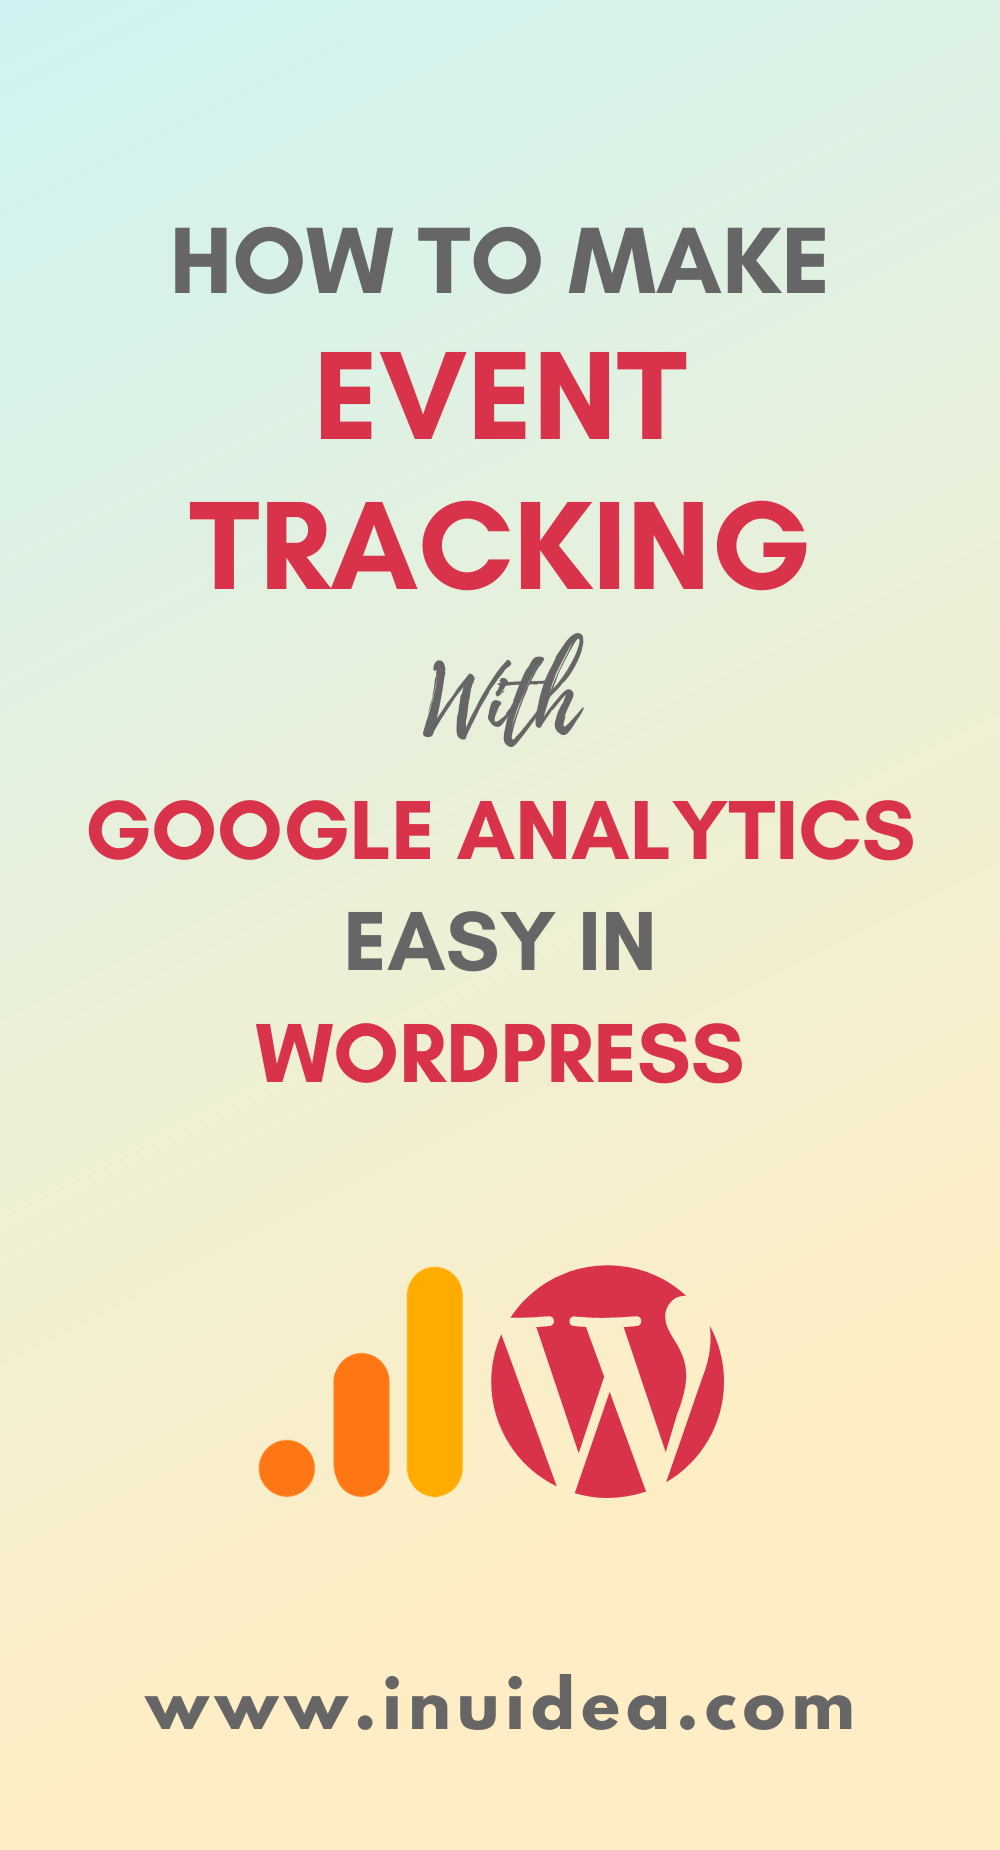 How to Make Event Tracking with Google Analytics Easy in WordPress